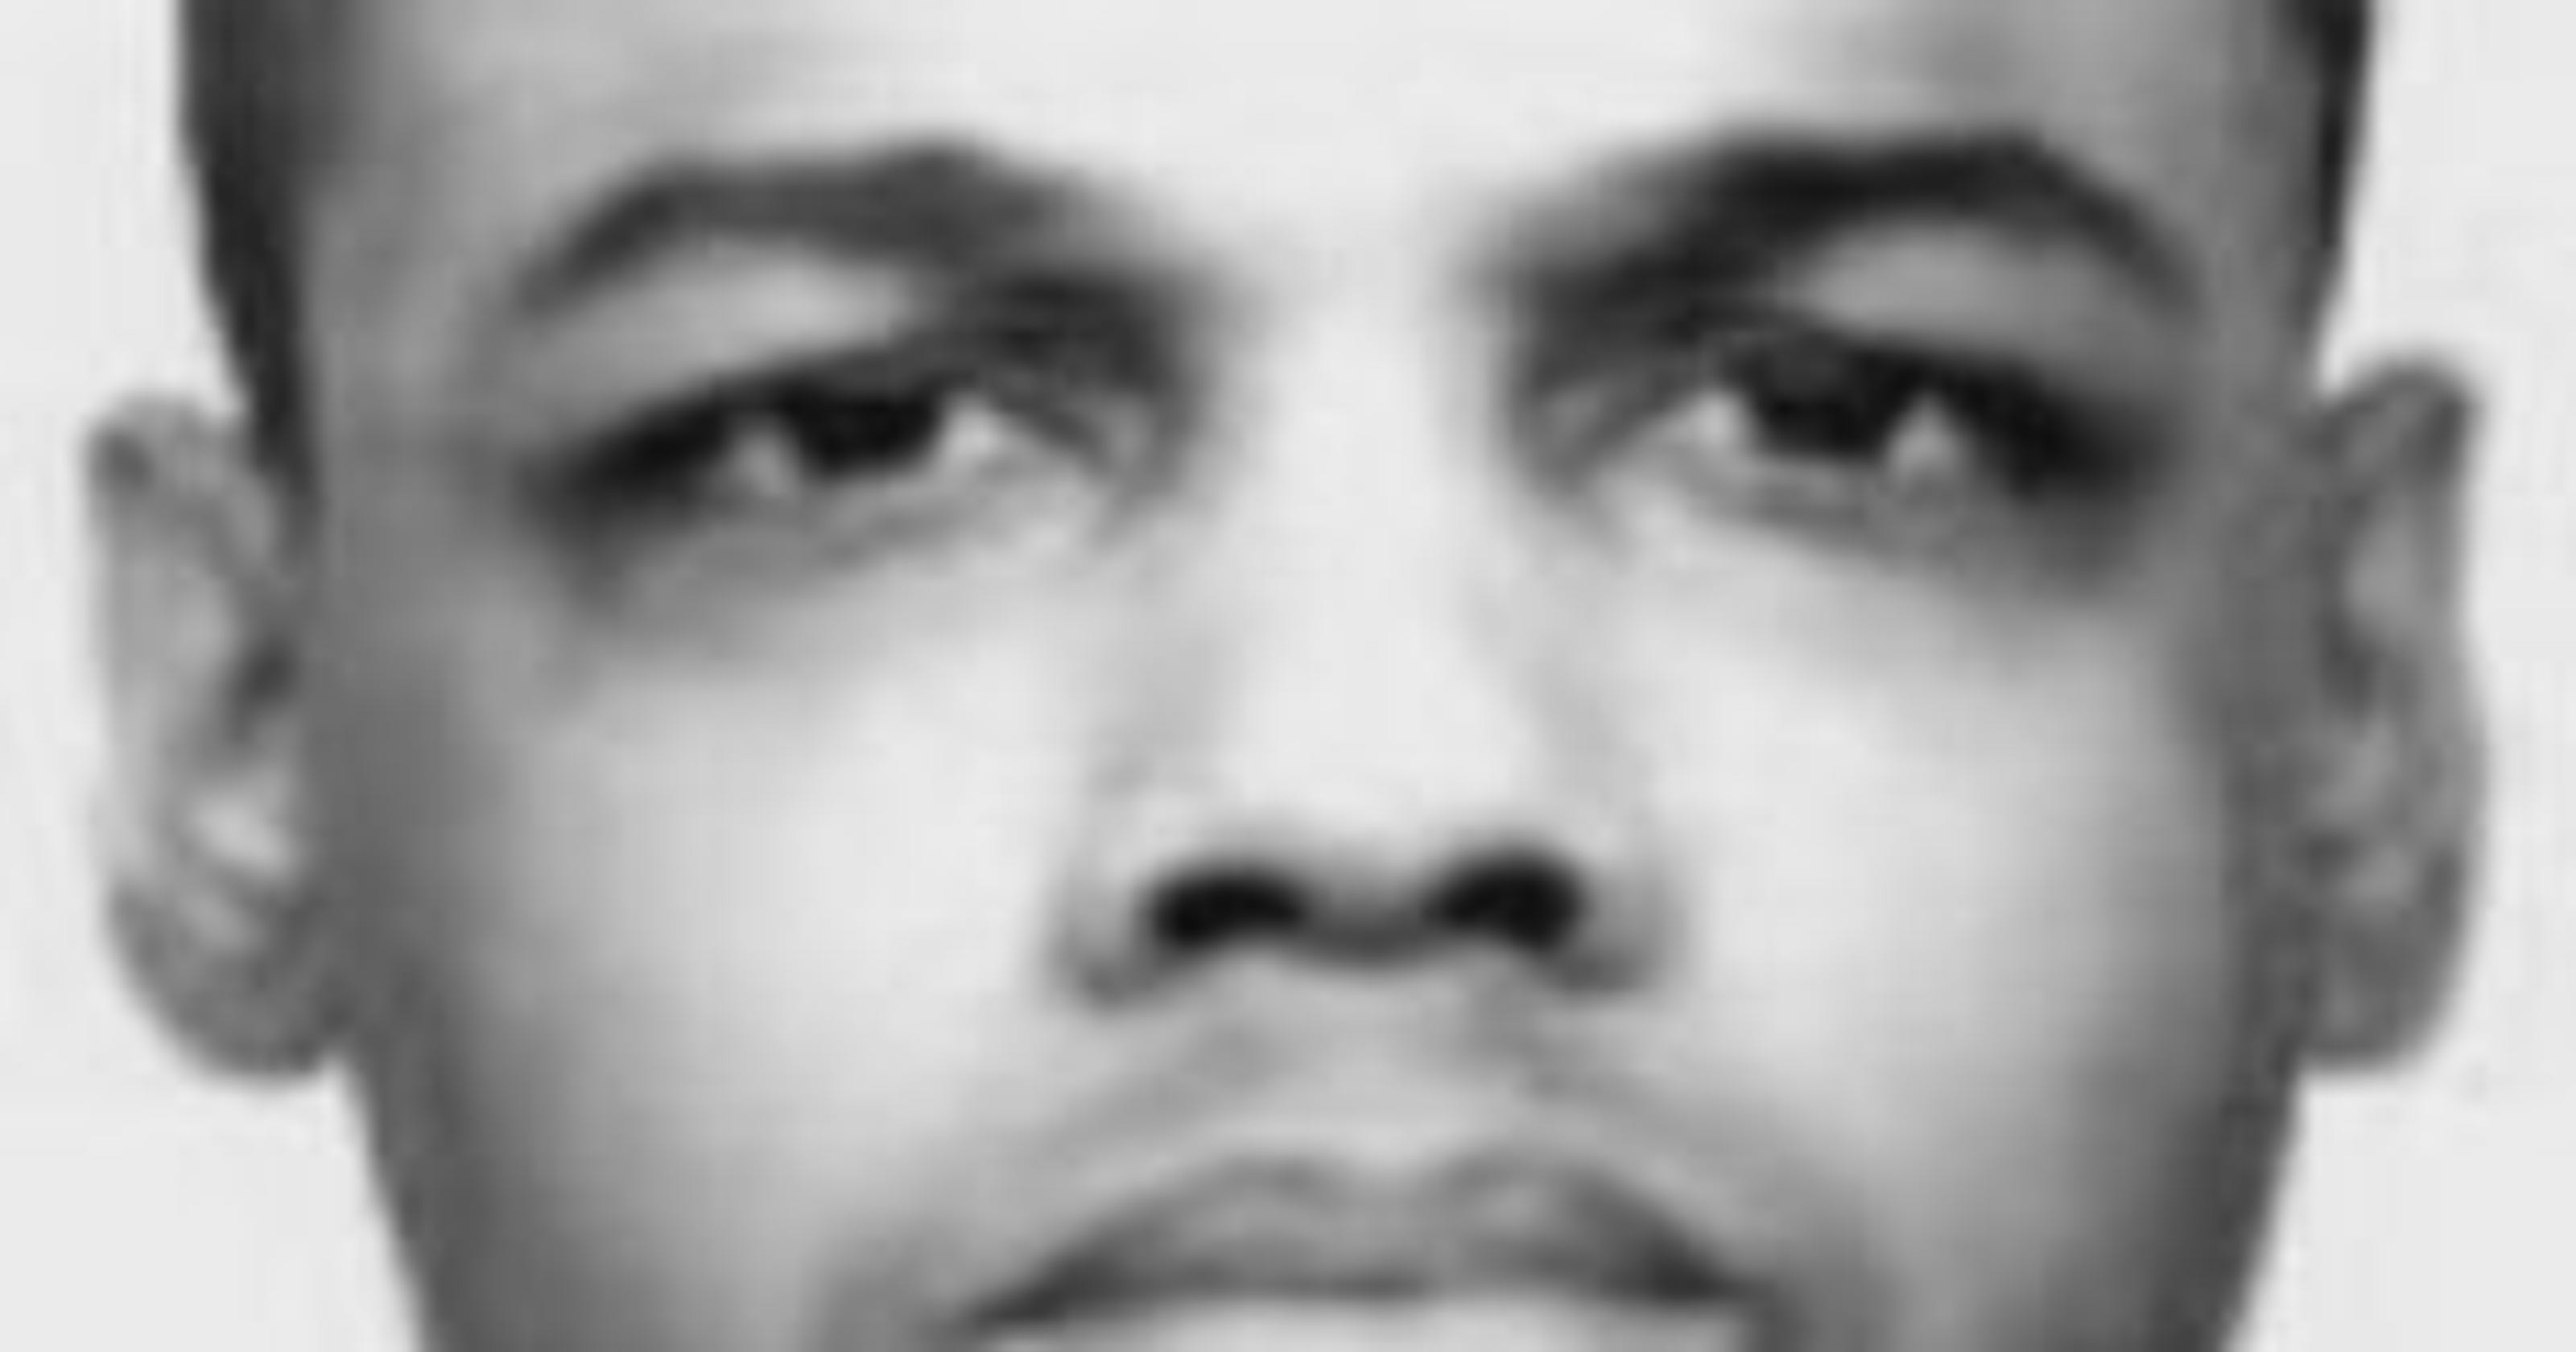 Alabama man on Texas death row wins court review